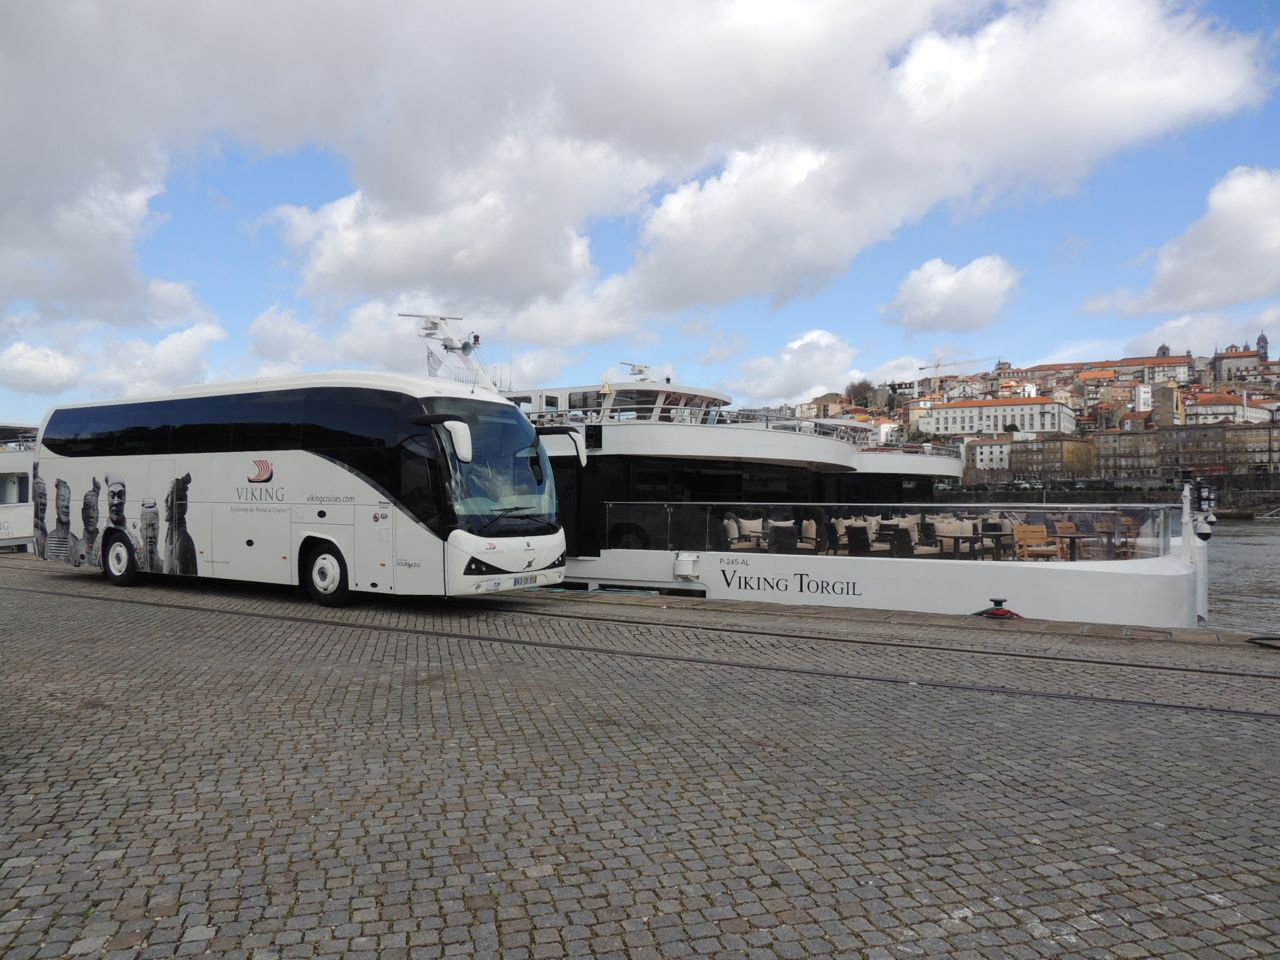 Viking Torgil at Porto